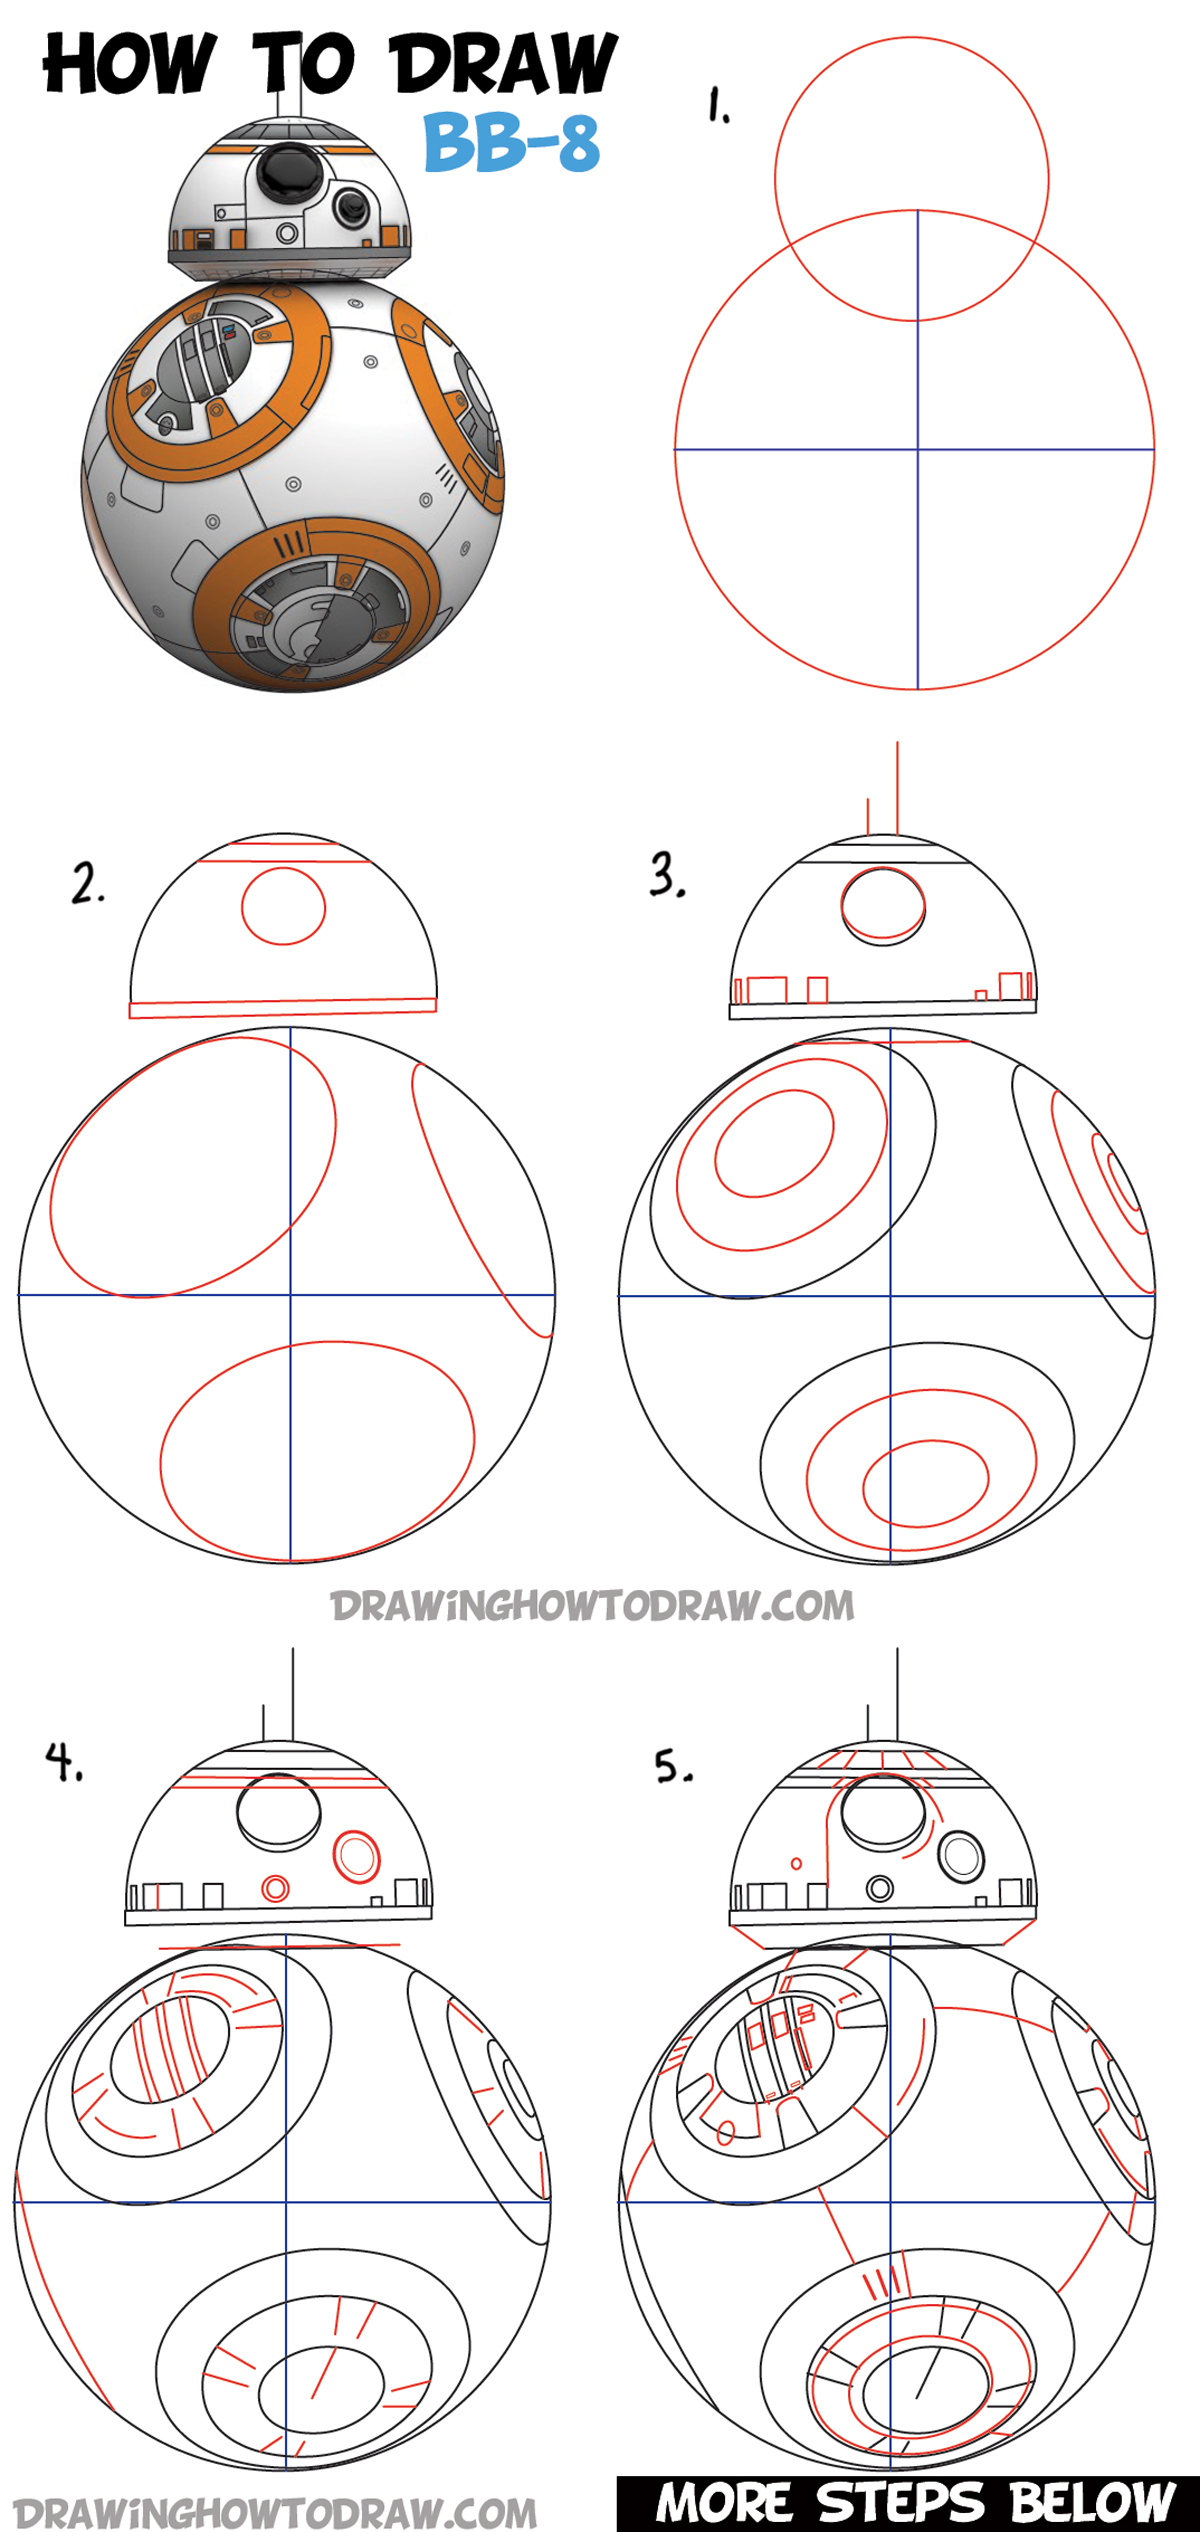 Step By Step Diagram Template: How To Draw BB-8 (Beeby-Ate) Droid From Star Wars Drawing